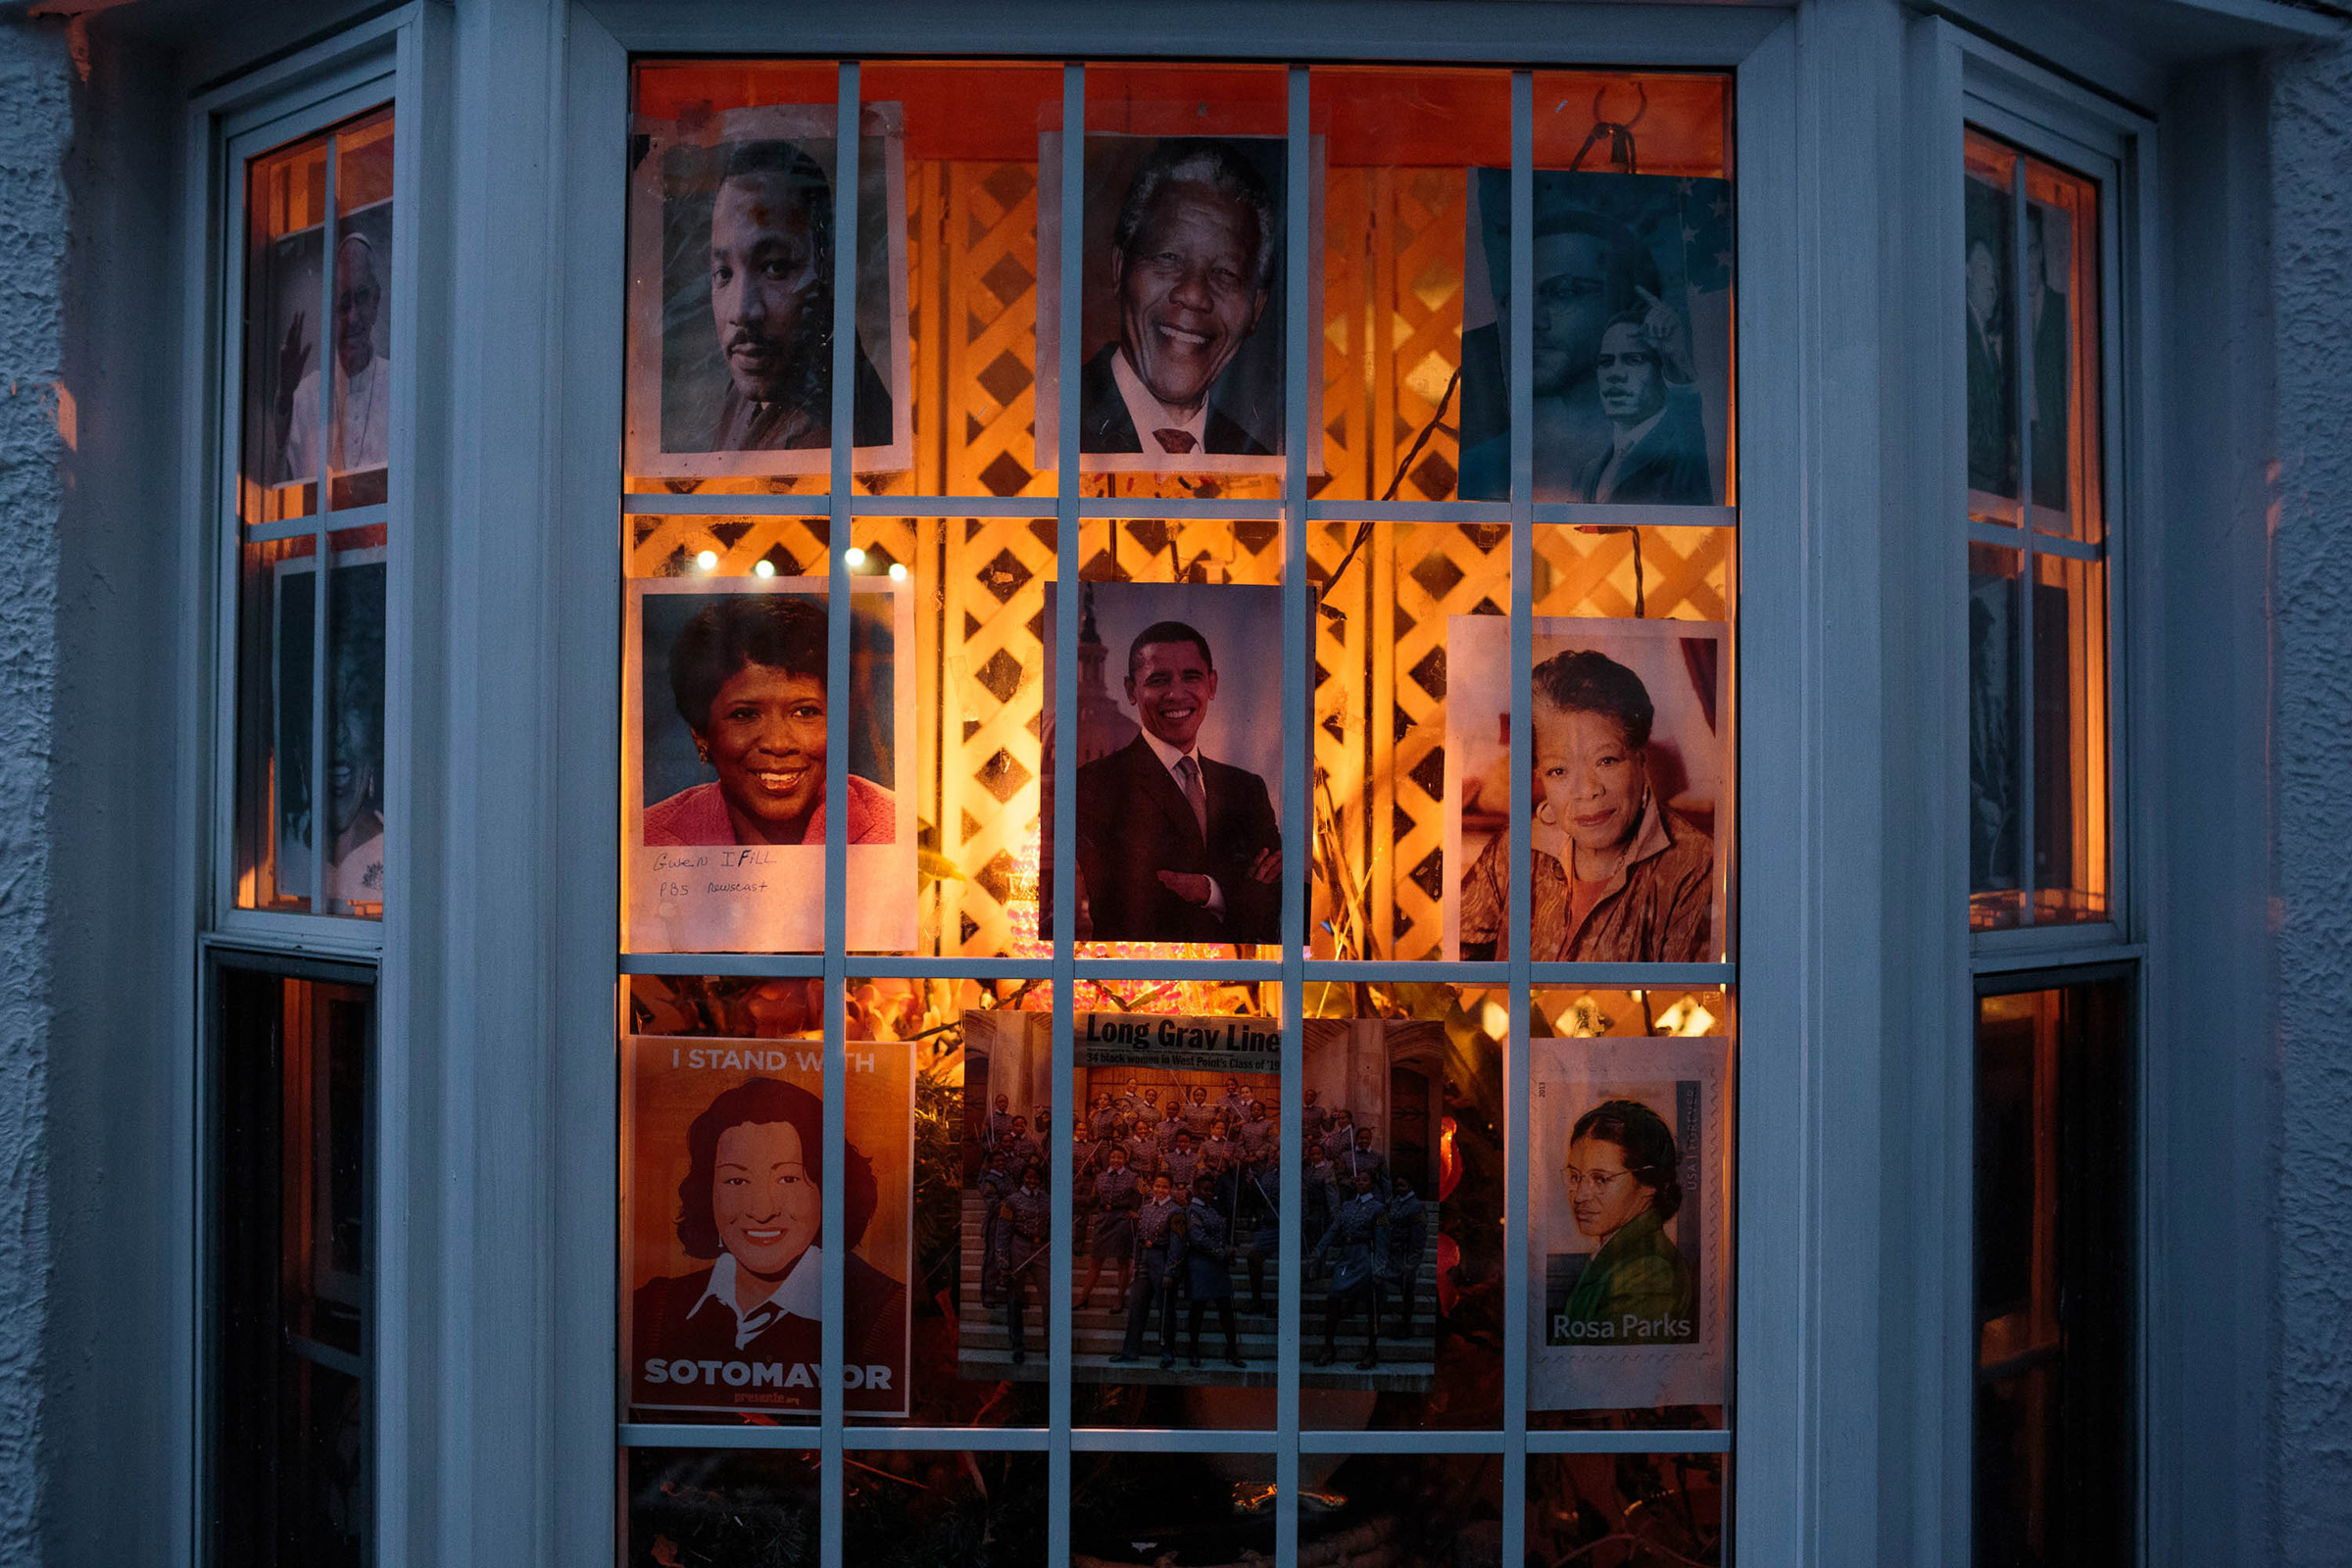 The front window of the Romey home in Bushwick is decorated with pictures of Blanche's idols, ranging from Obama, Rosa Parks, Pope Francis, and a recent photograph of young black women who were recently admitted into West Point. Blanche hopes that the young neighborhood kids walking by will notice them and find some inspiration.